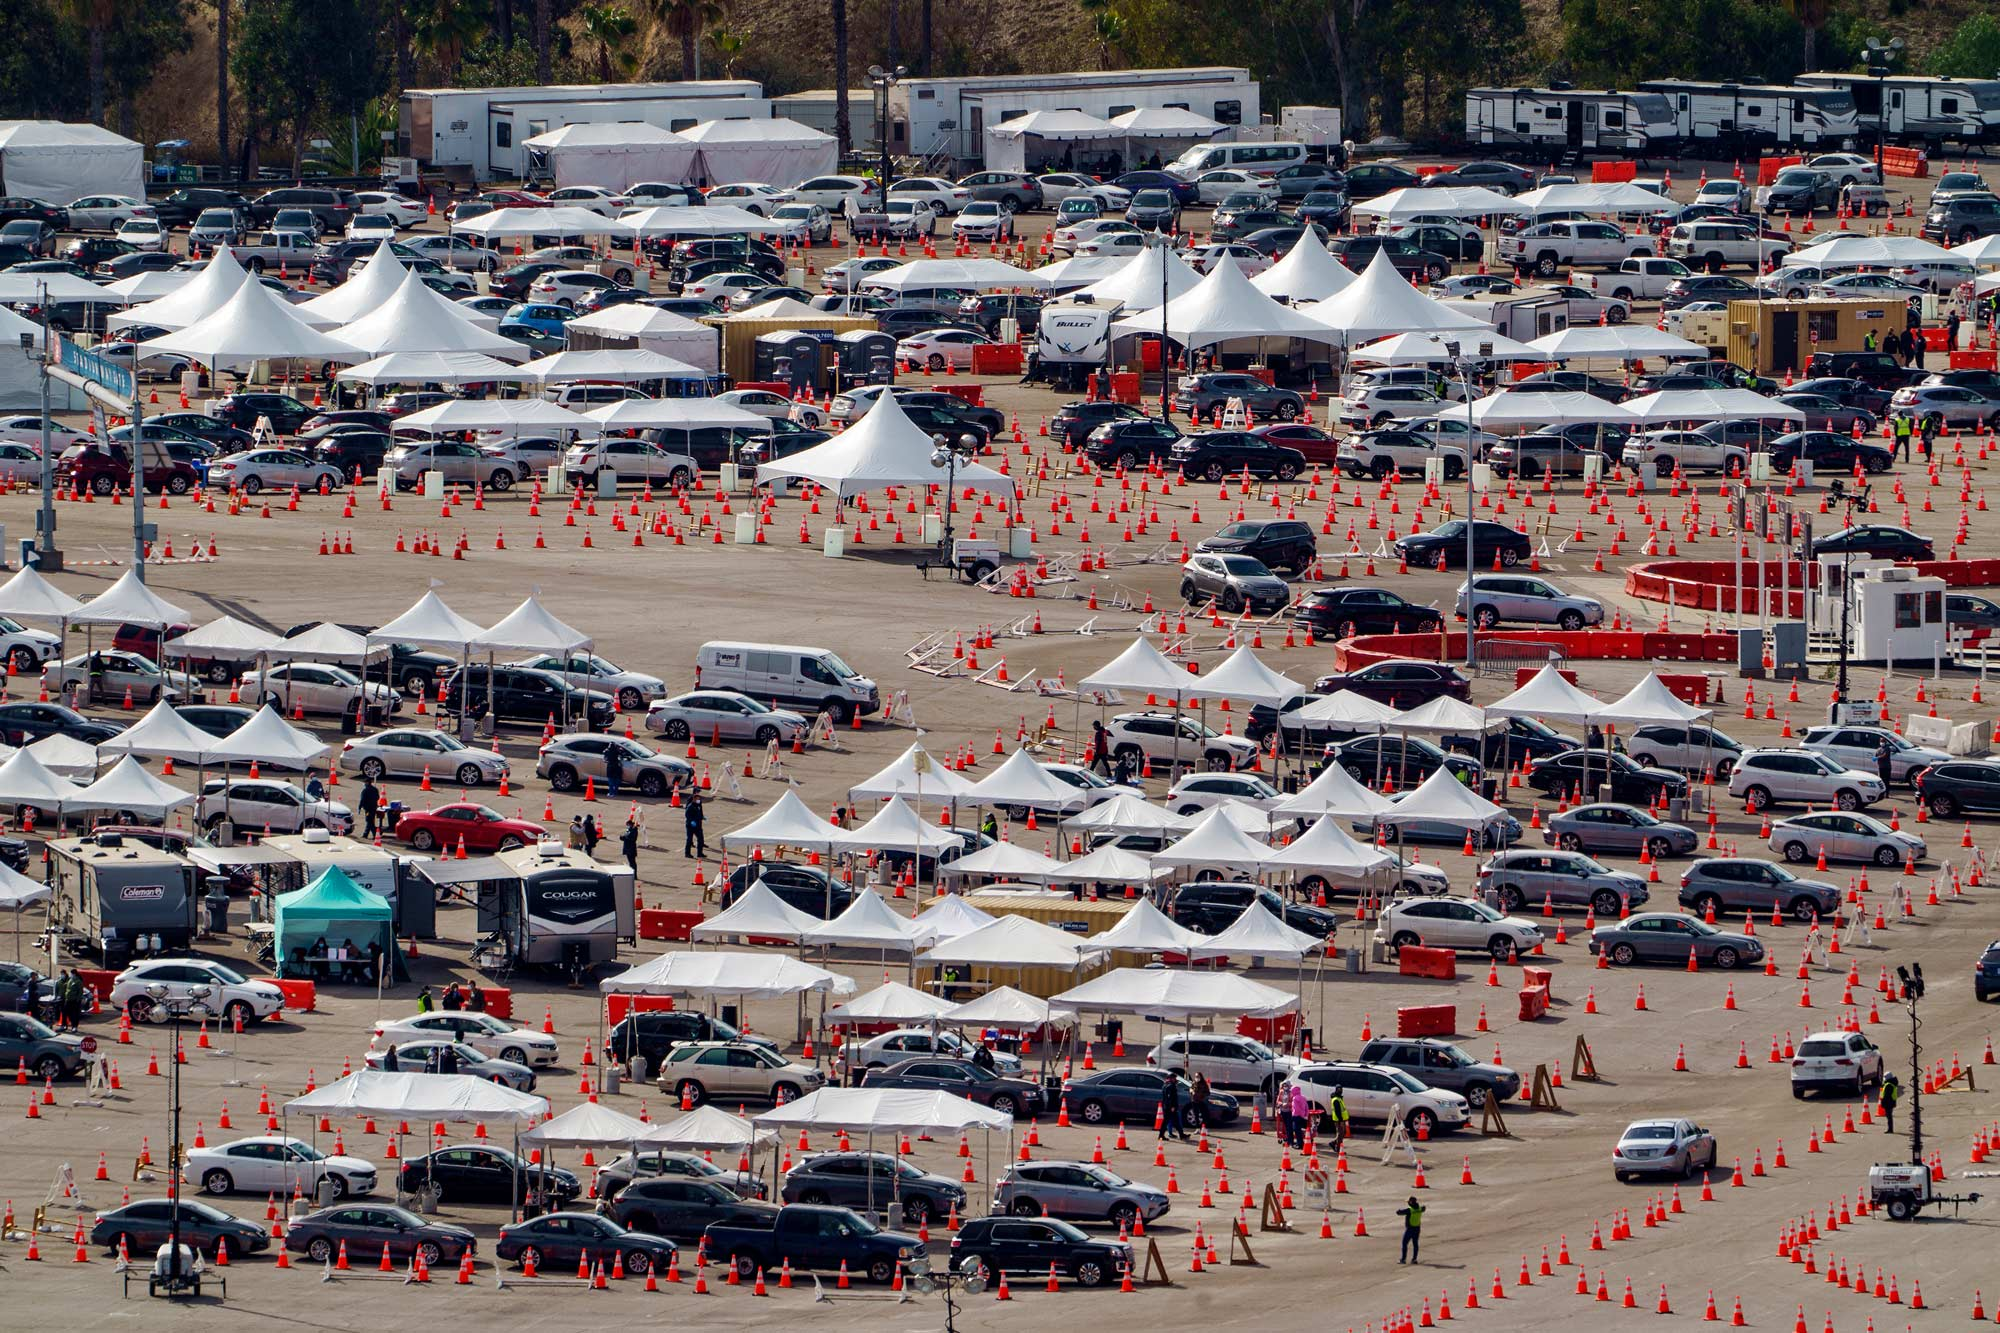 Drivers wait in line at a mega COVID-19 vaccination site set up in the parking lot of Dodger Stadium in Los Angeles on January 27.